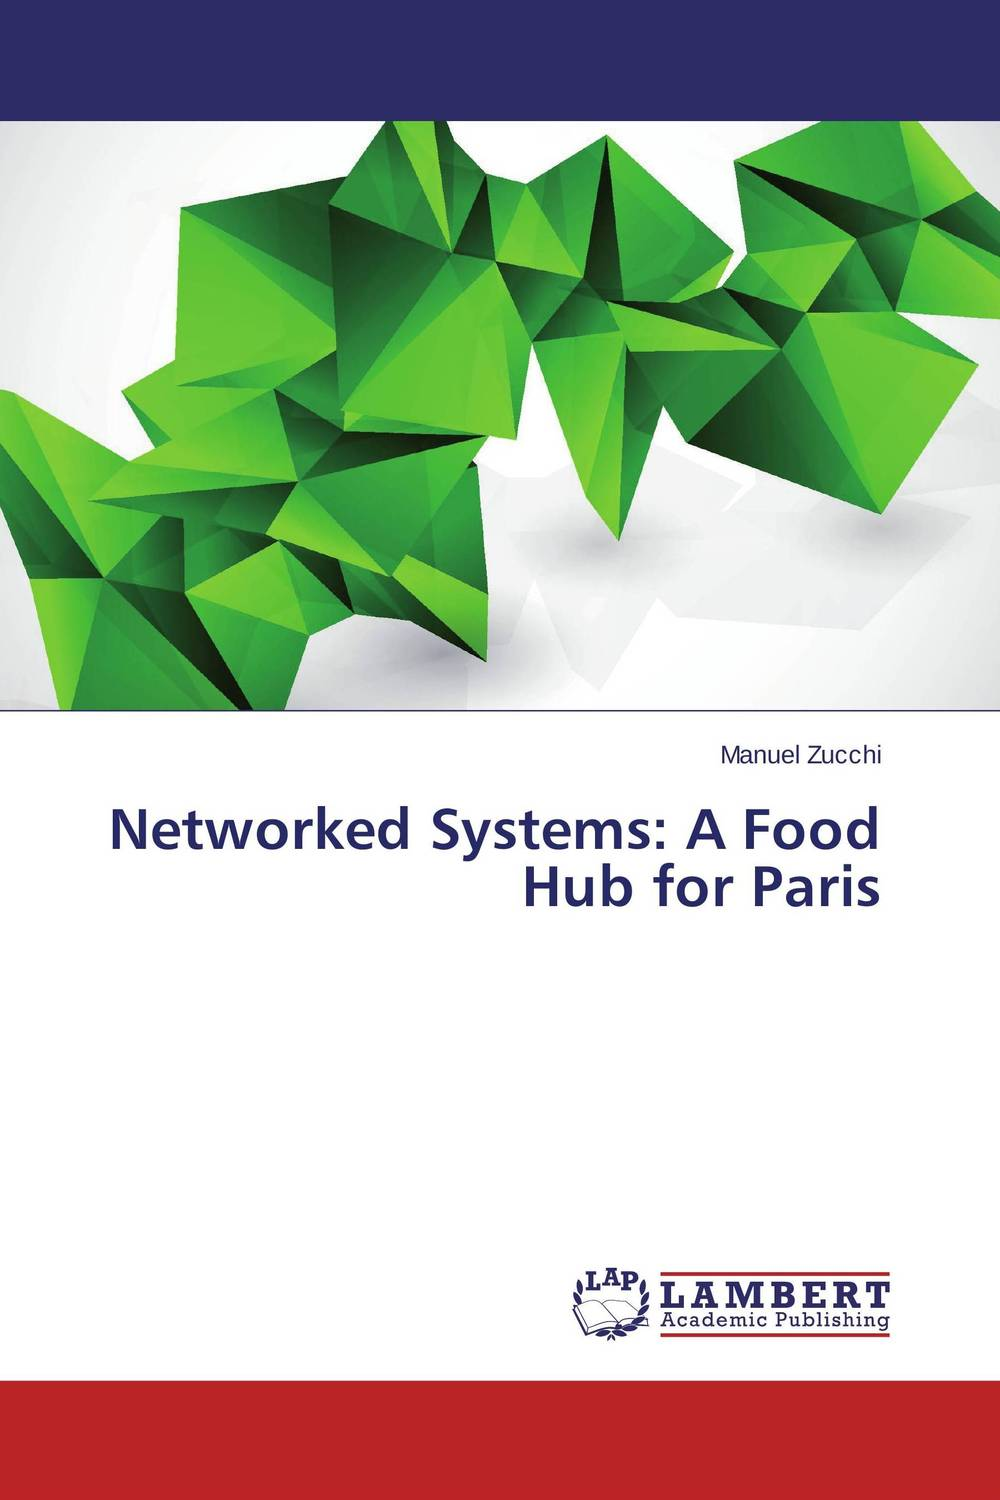 Networked Systems: A Food Hub for Paris raman kumar singh facets of an upcoming urban industrial hub